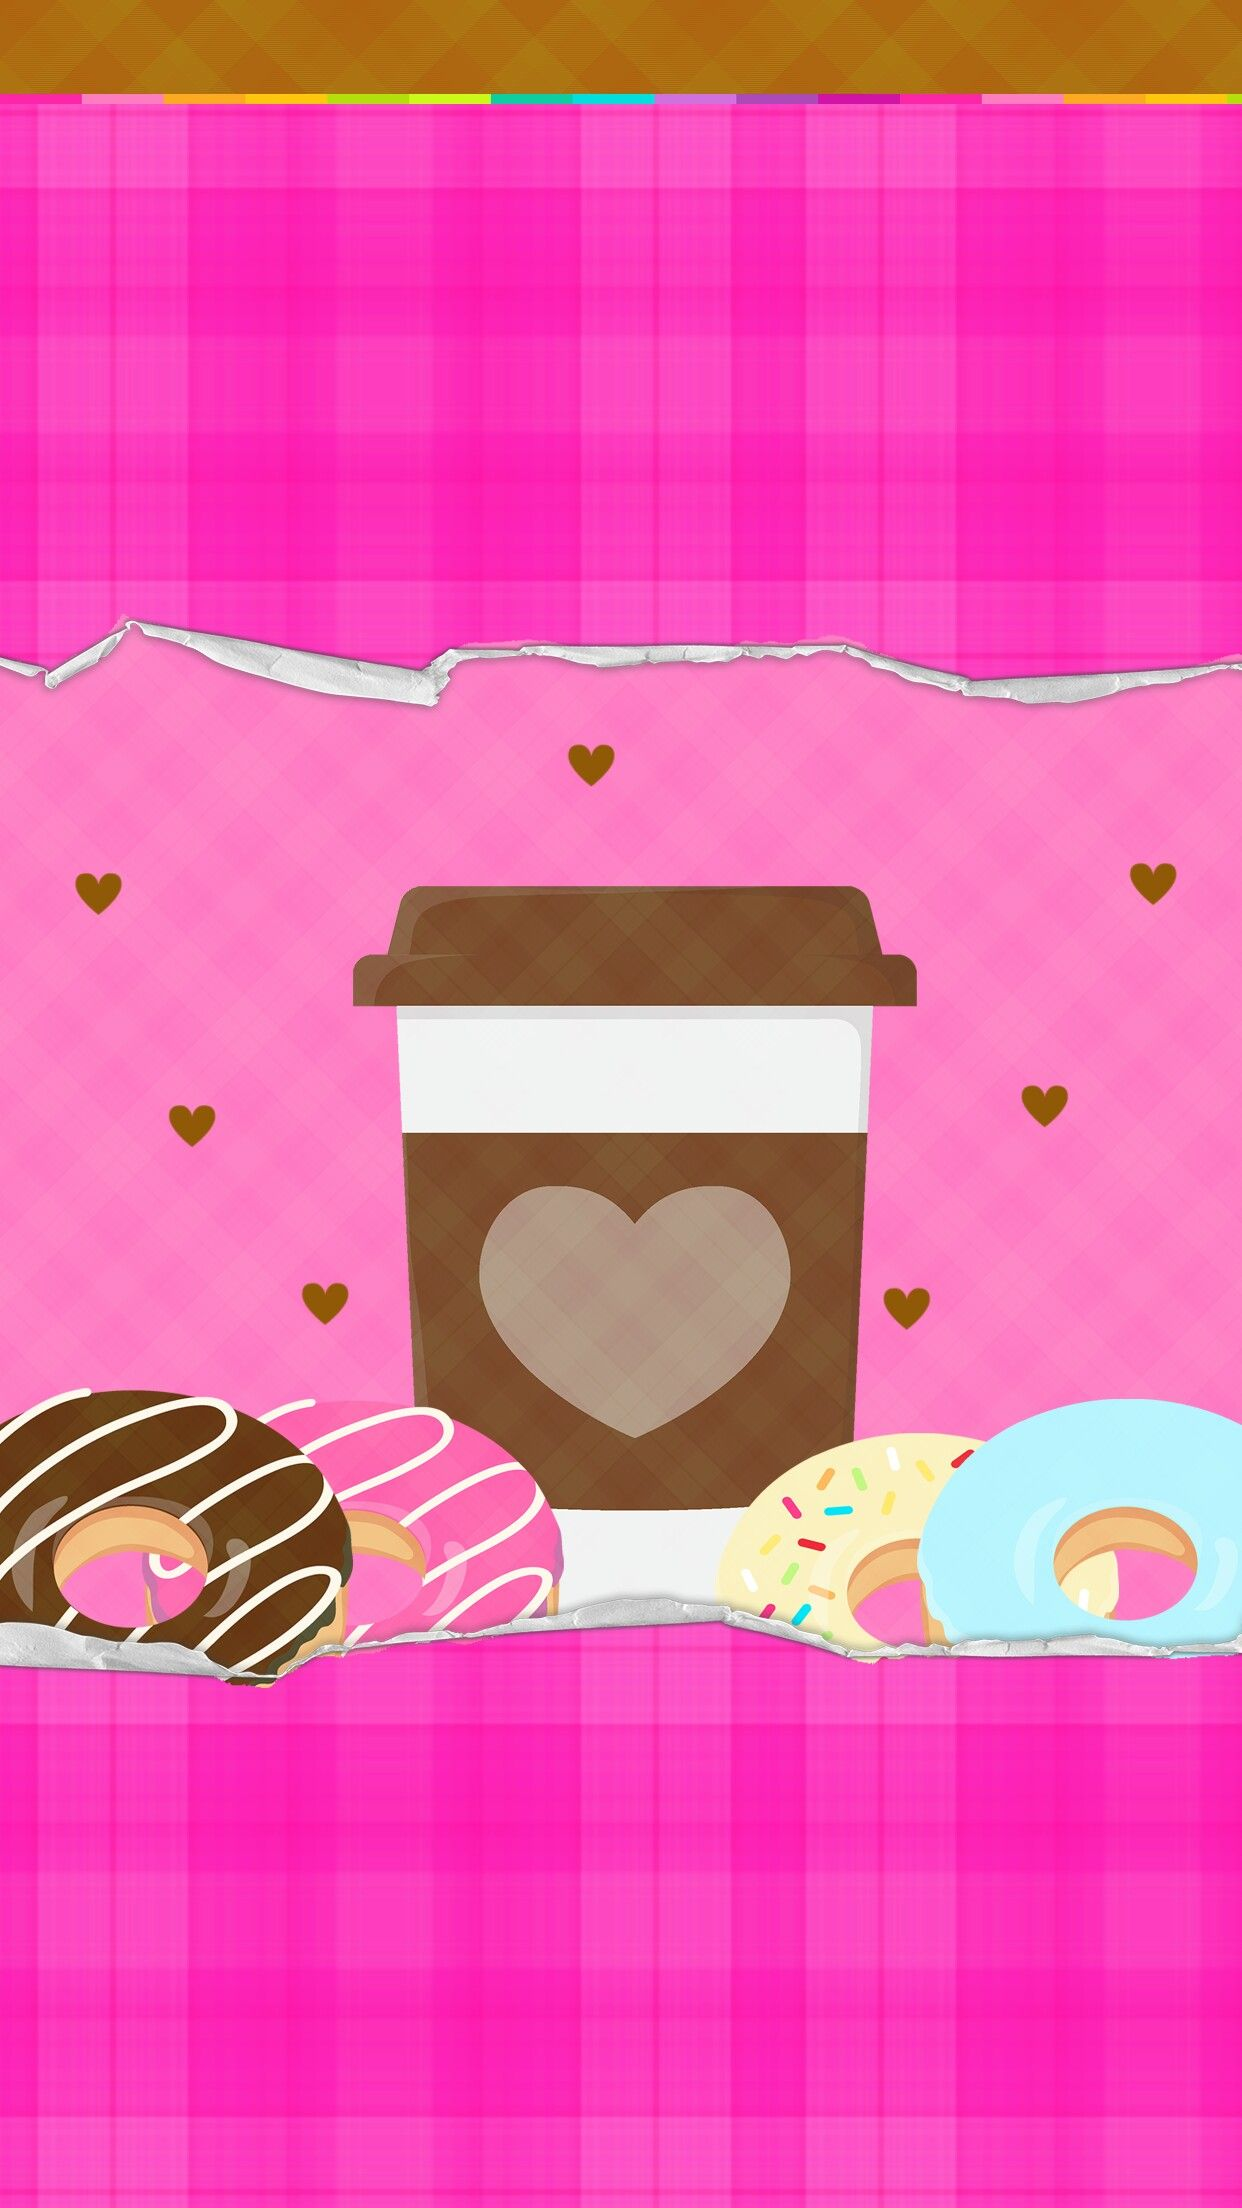 Simple Wallpaper Hello Kitty Donut - 49102c0b5c77b189daf84698720c2aec  Perfect Image Reference_347517.jpg